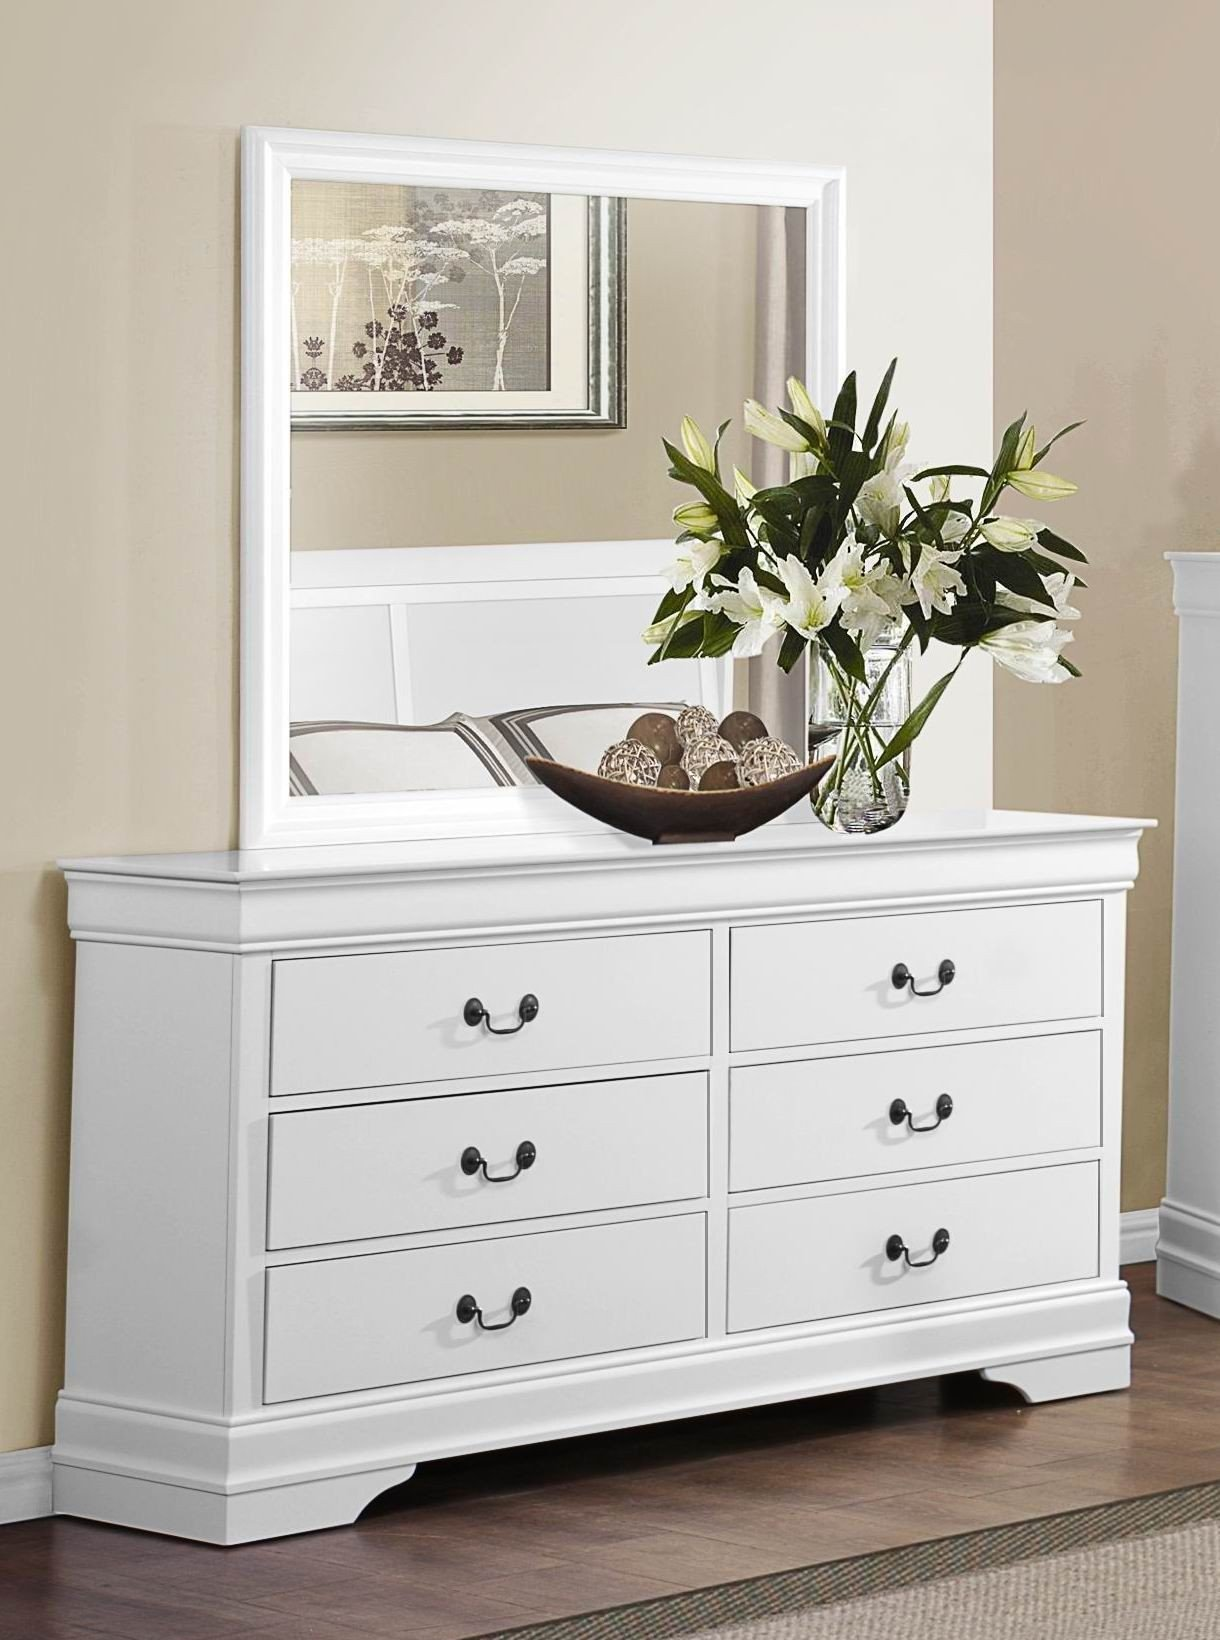 Mayville burnished white sleigh bedroom set 1stopbedrooms - Bedroom furniture sets buy now pay later ...